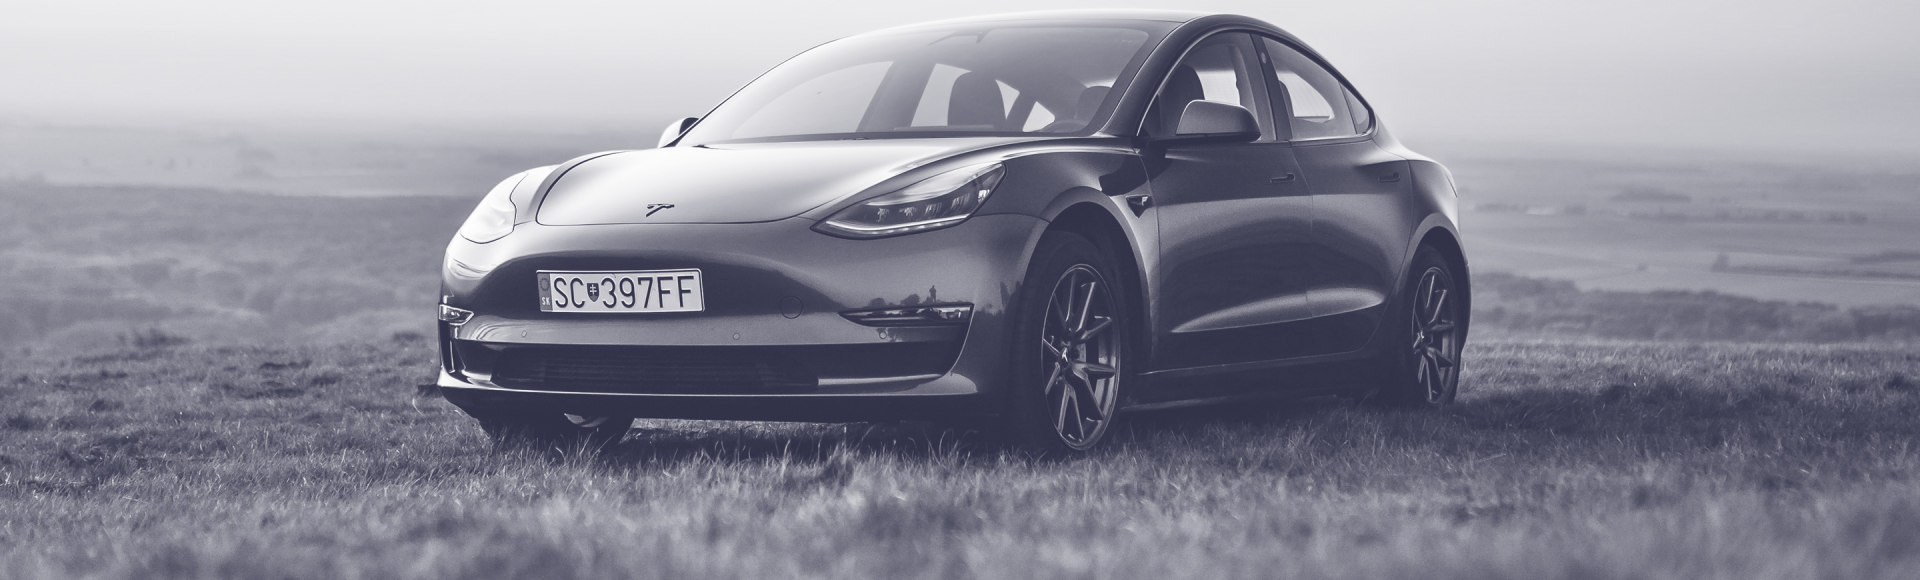 ARK-Invest_Blog-Banner_2016_10_10---Tesla-Model-3